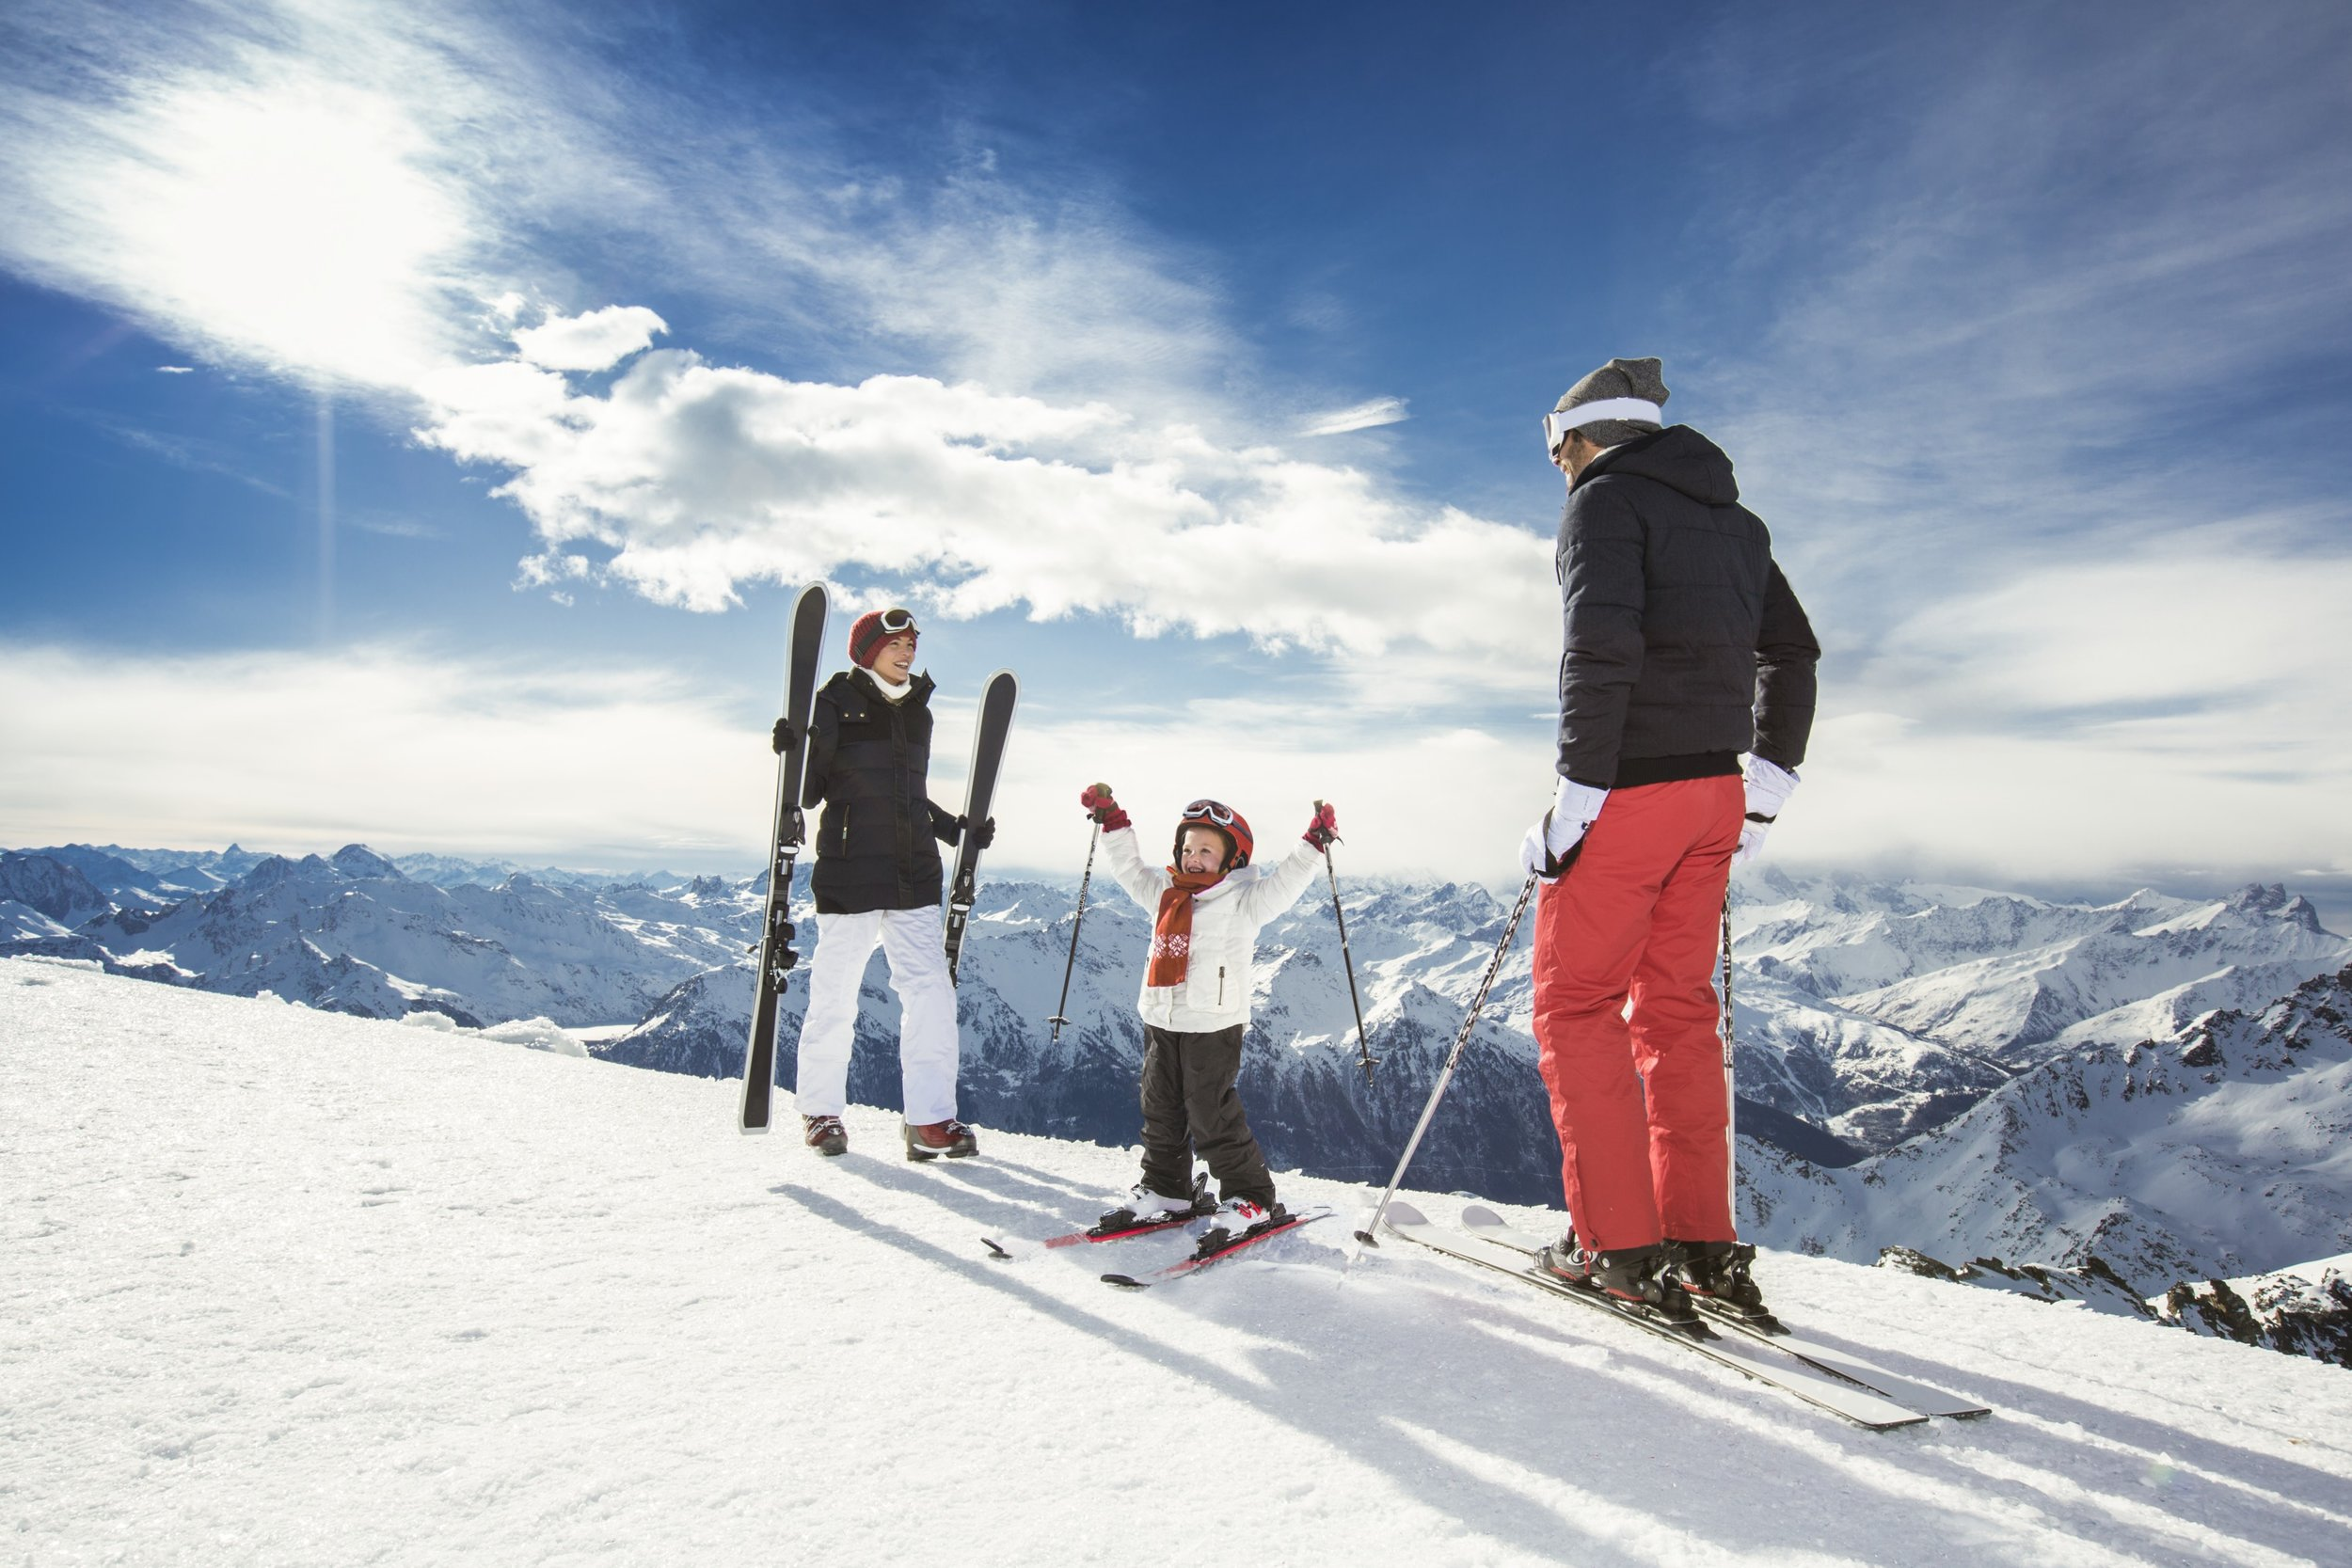 #1 Logistics? All sorted - Enjoy maximum time on the slopes with your lift pass ready, small group lessons for ski or snowboard all organised with professional instructors and the kids all taken care of in Kids Clubs or in ski and snowboard lessons. And it's all included!